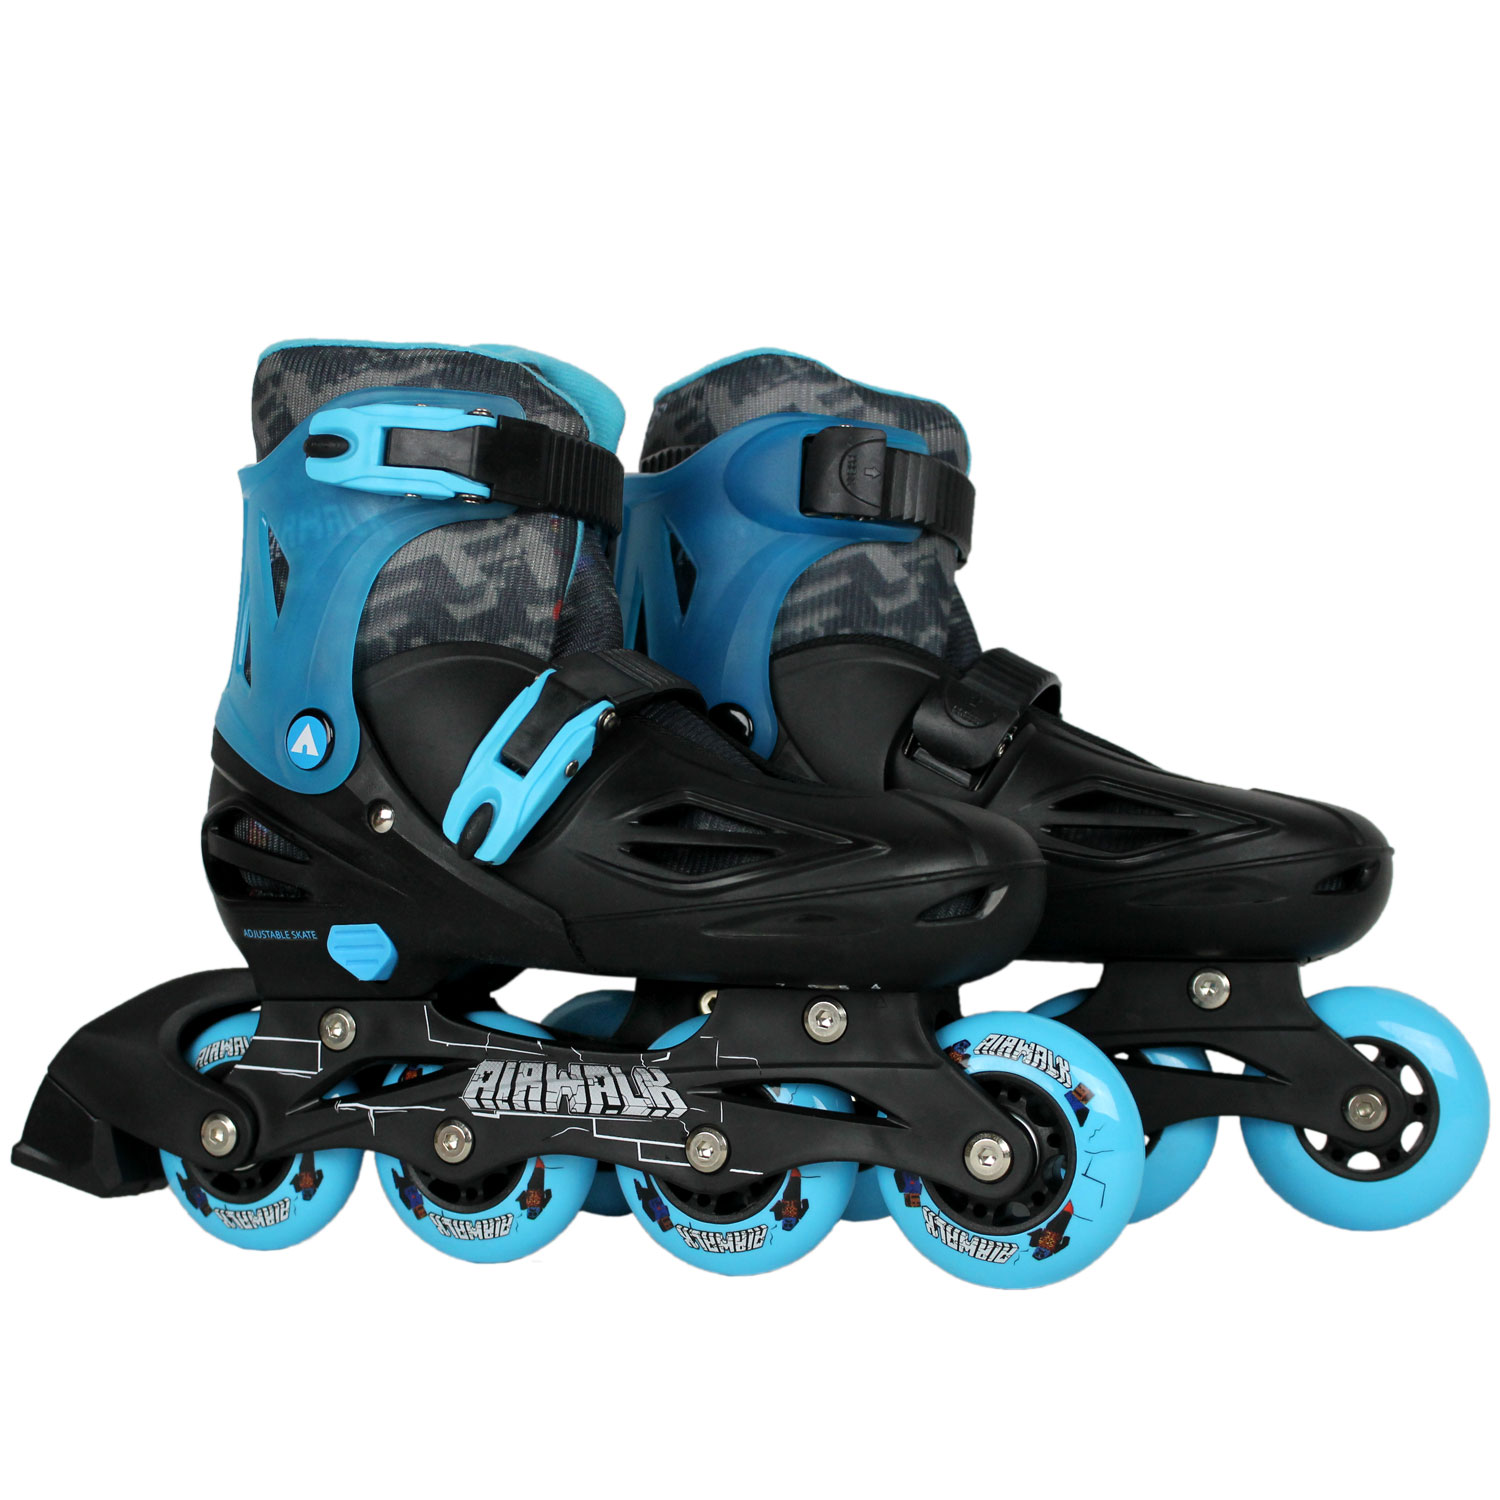 AIRWALK Youth Inline Skates TRITON BLACK/BLUE LARGE 4-7 Adjustable Rollerblades